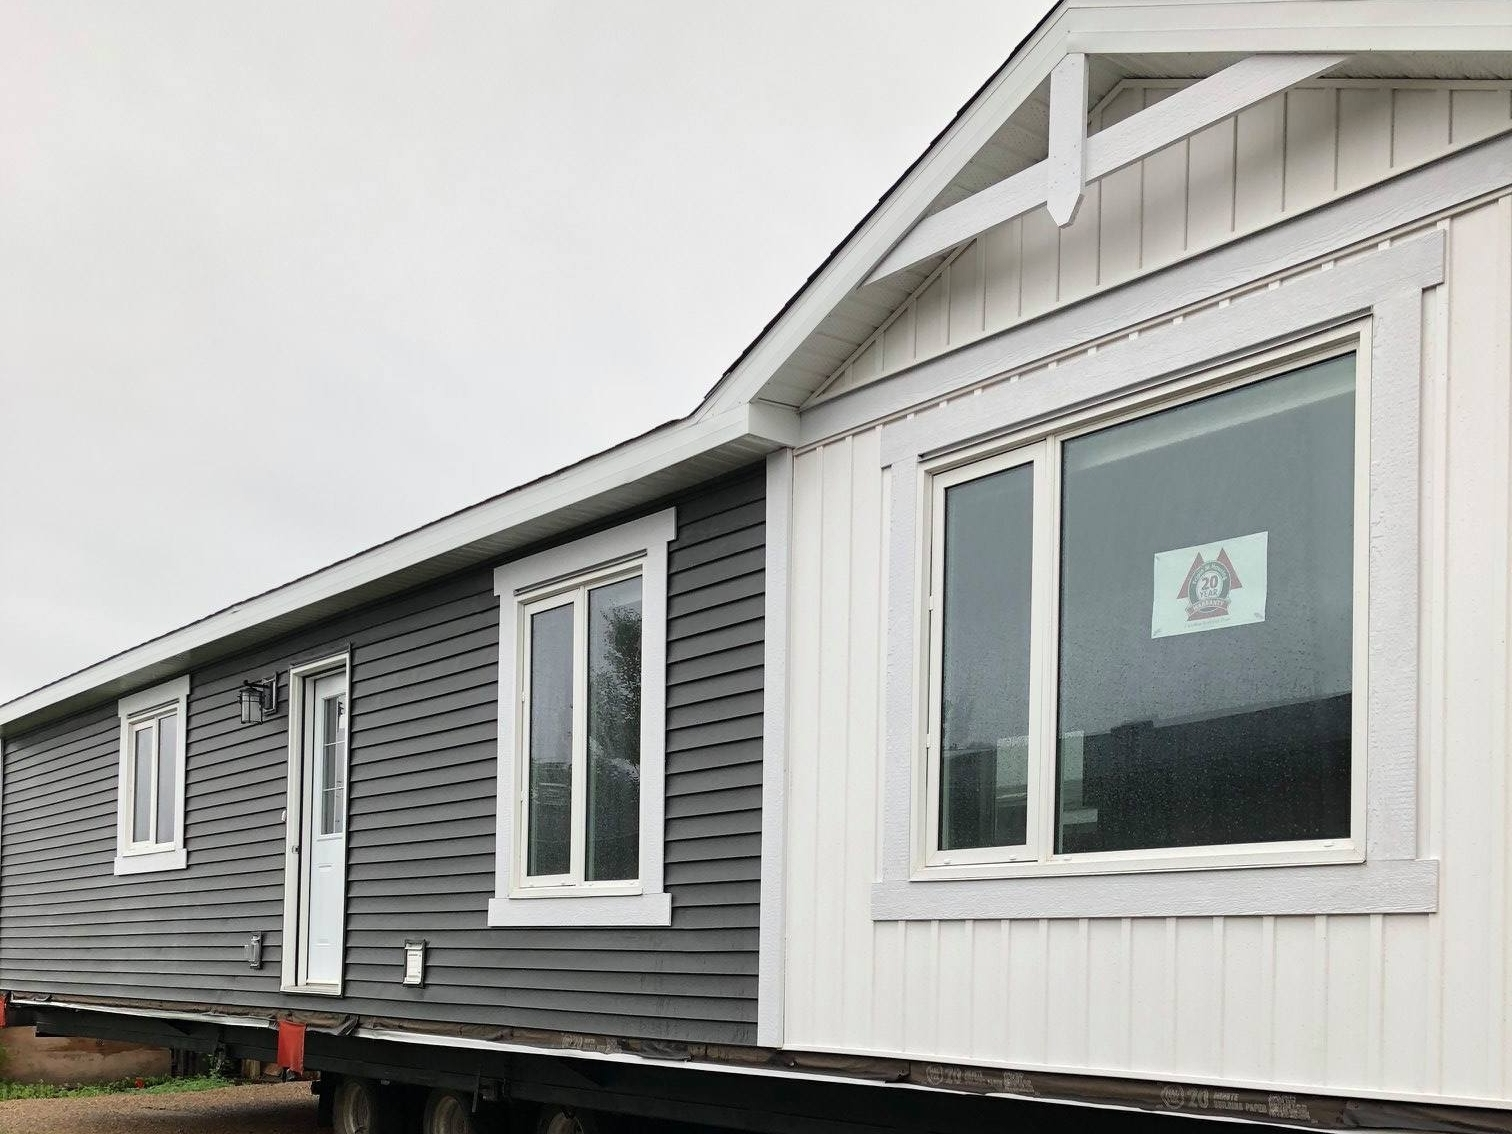 297 gregoire cres - New Modular Home with Land | Gregoire ParkSOLD - $300,000.00